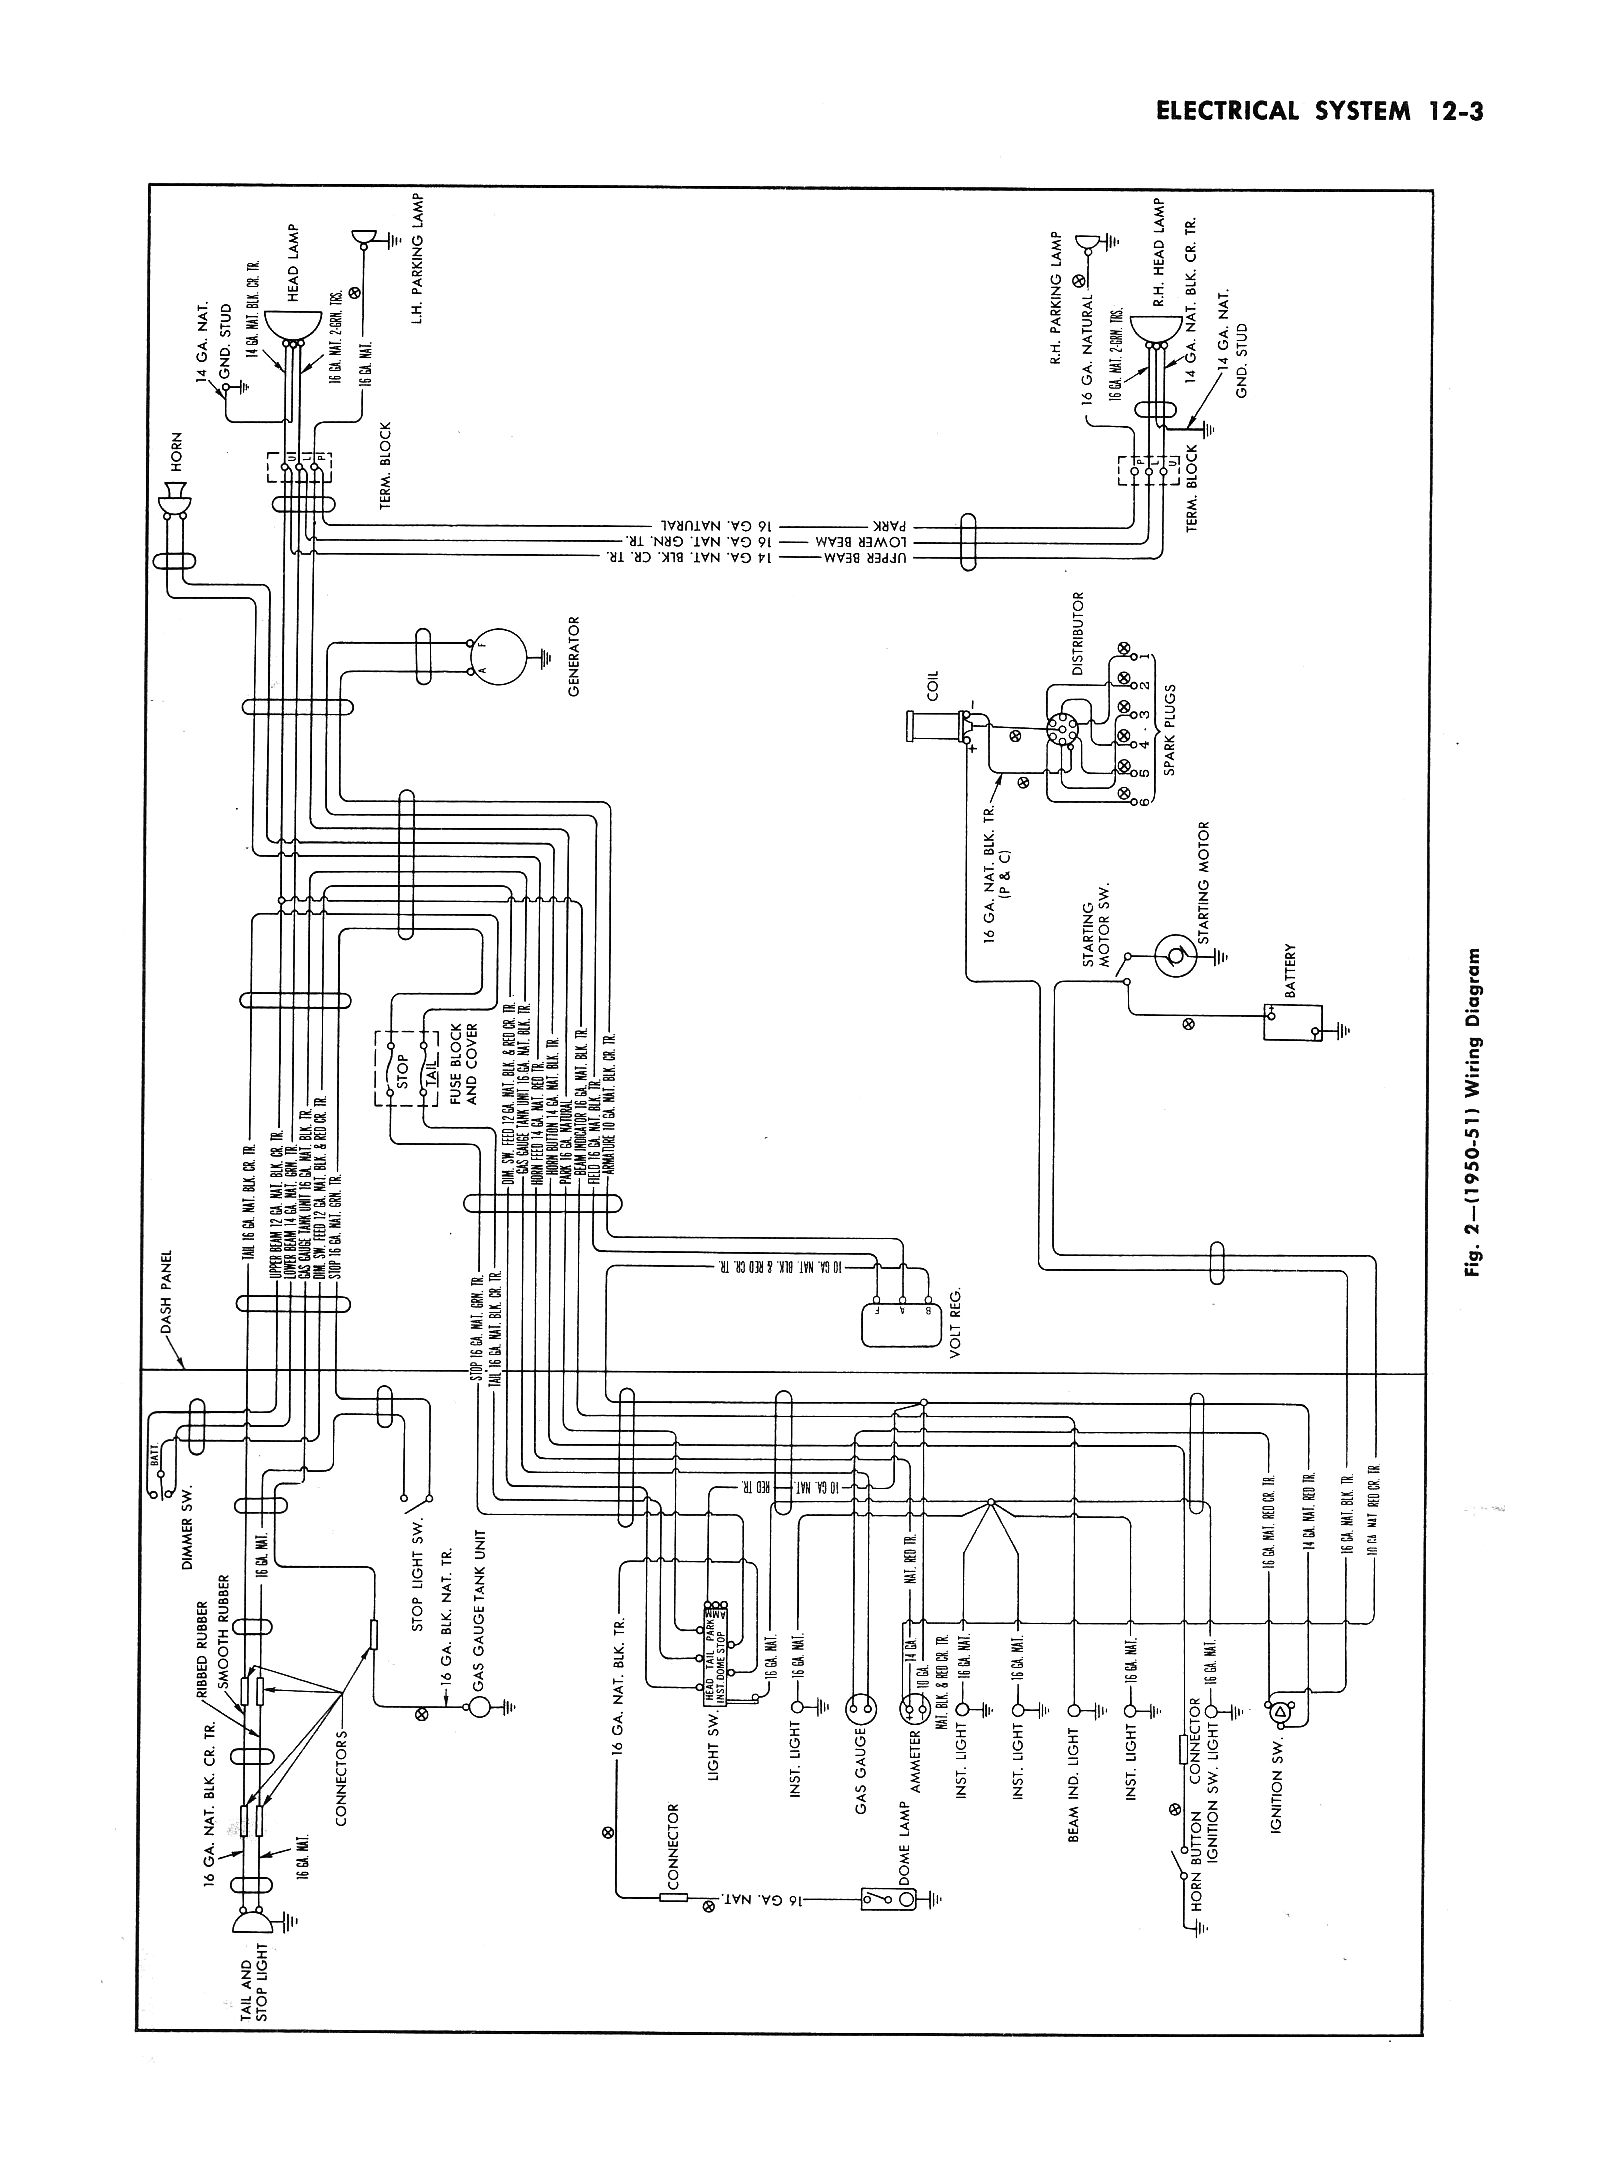 Chevy Wiring Diagrams Mercruiser 184 Diagram 1950 Truck